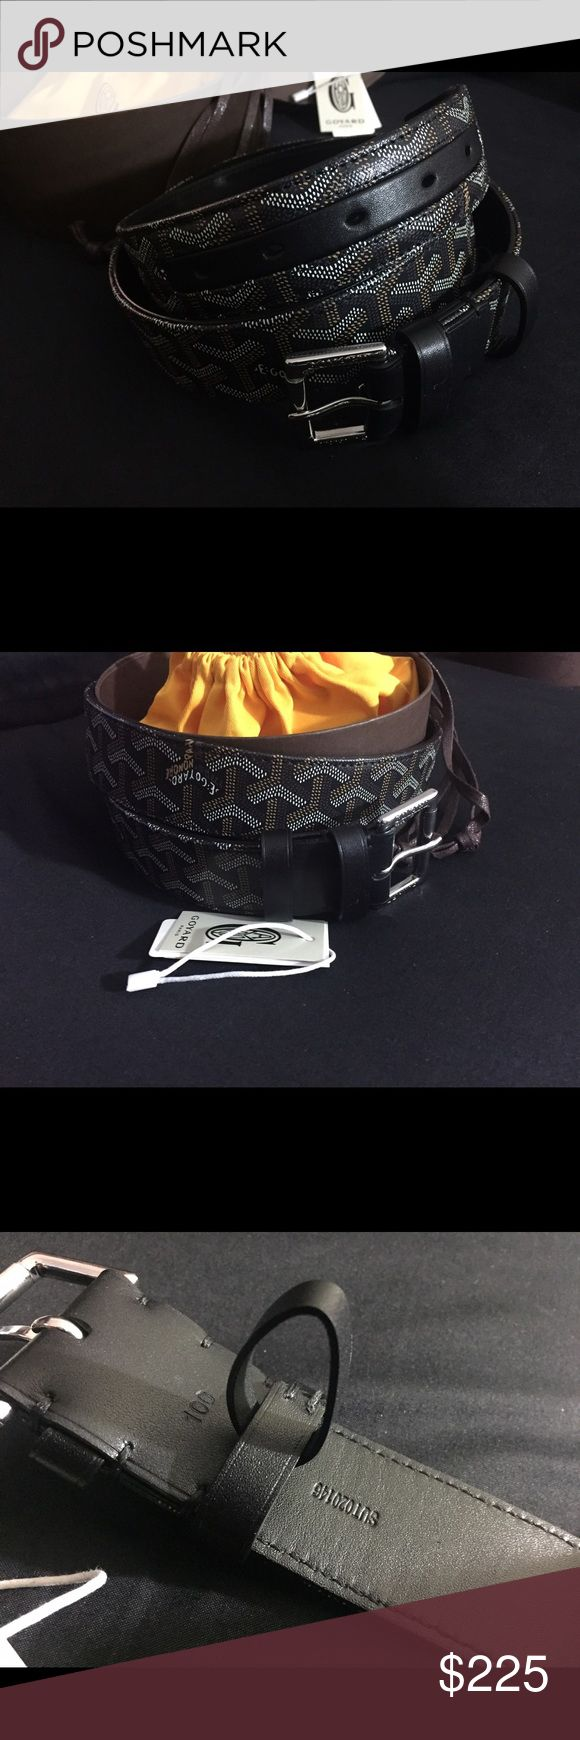 Black Goyard Belt Authentic Brand new in box with dust bag. Goyard Accessories Belts